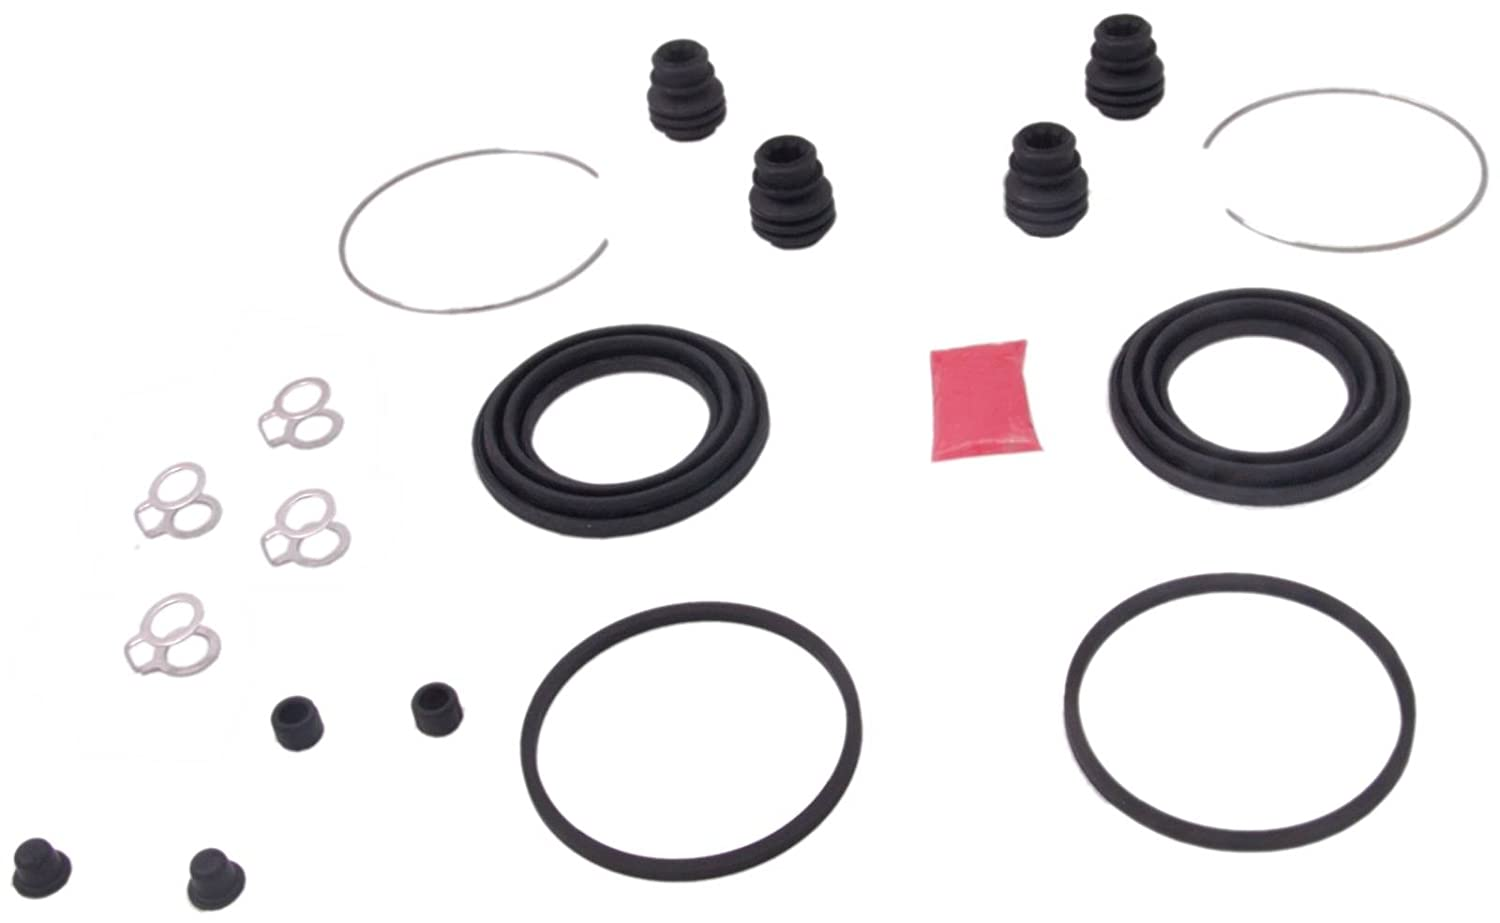 Cylinder Kit For Toyota 04479-48020 447948020